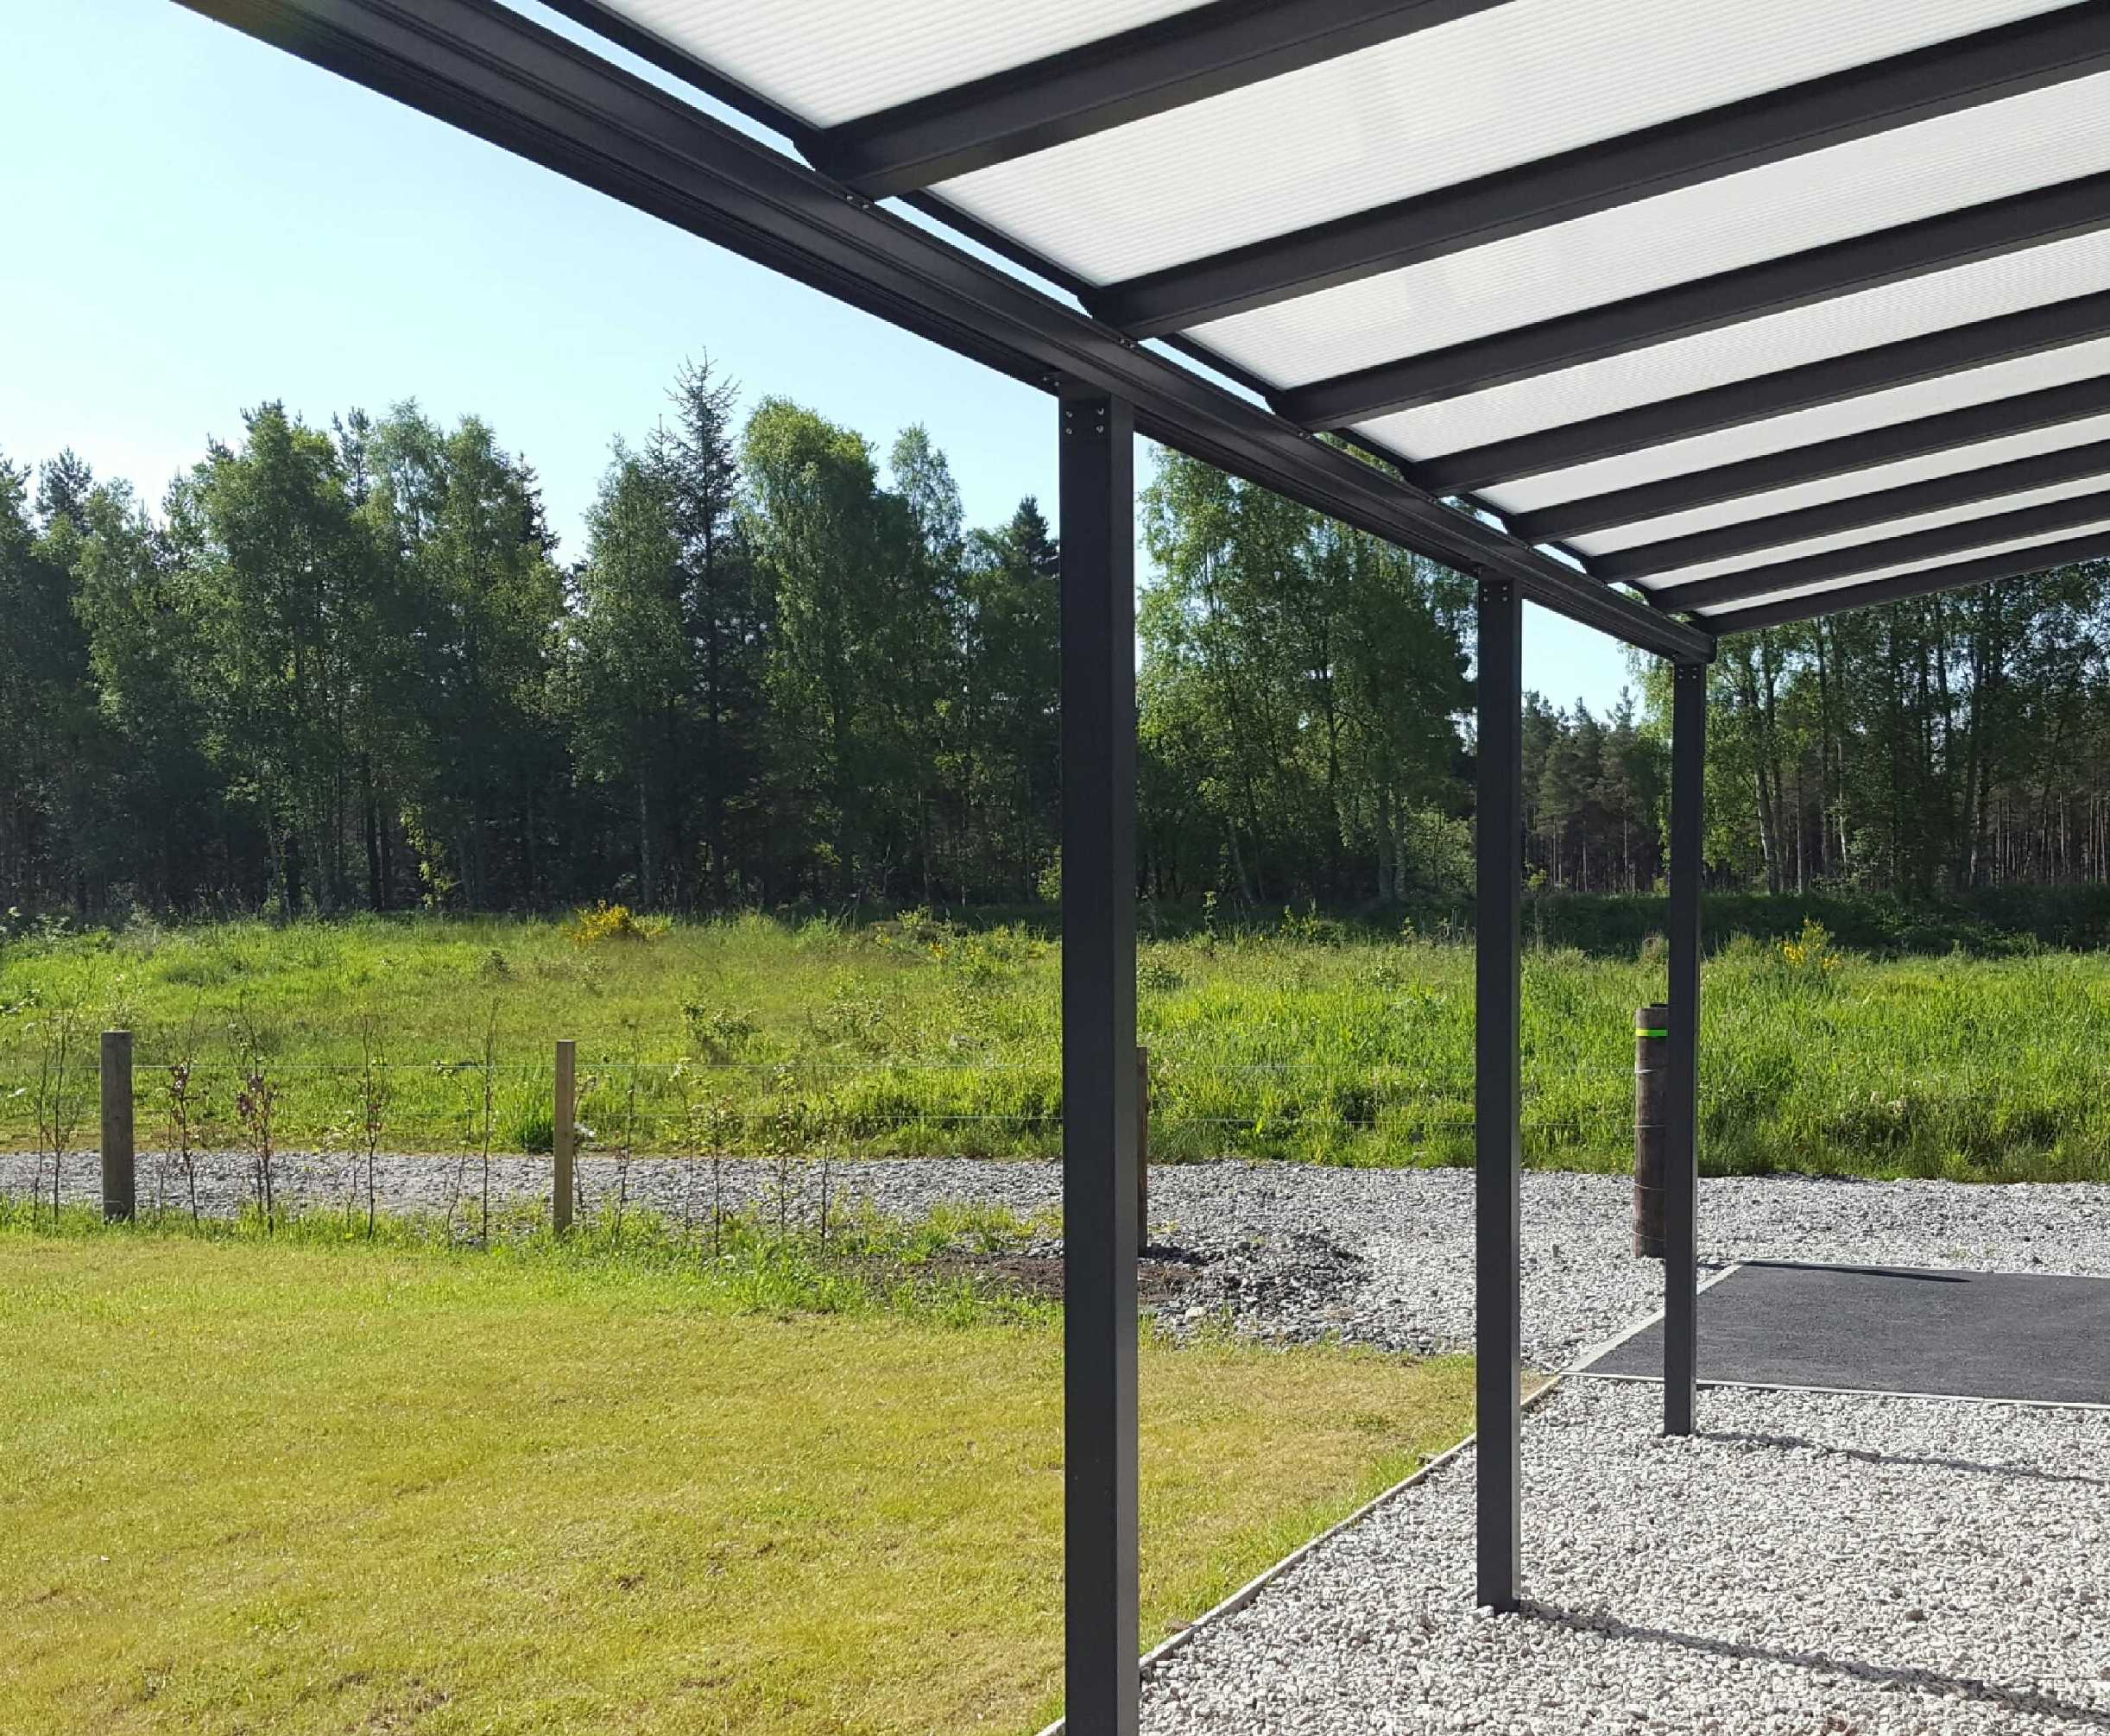 Omega Smart Lean-To Canopy, Anthracite Grey, 16mm Polycarbonate Glazing - 11.4m (W) x 3.5m (P), (5) Supporting Posts